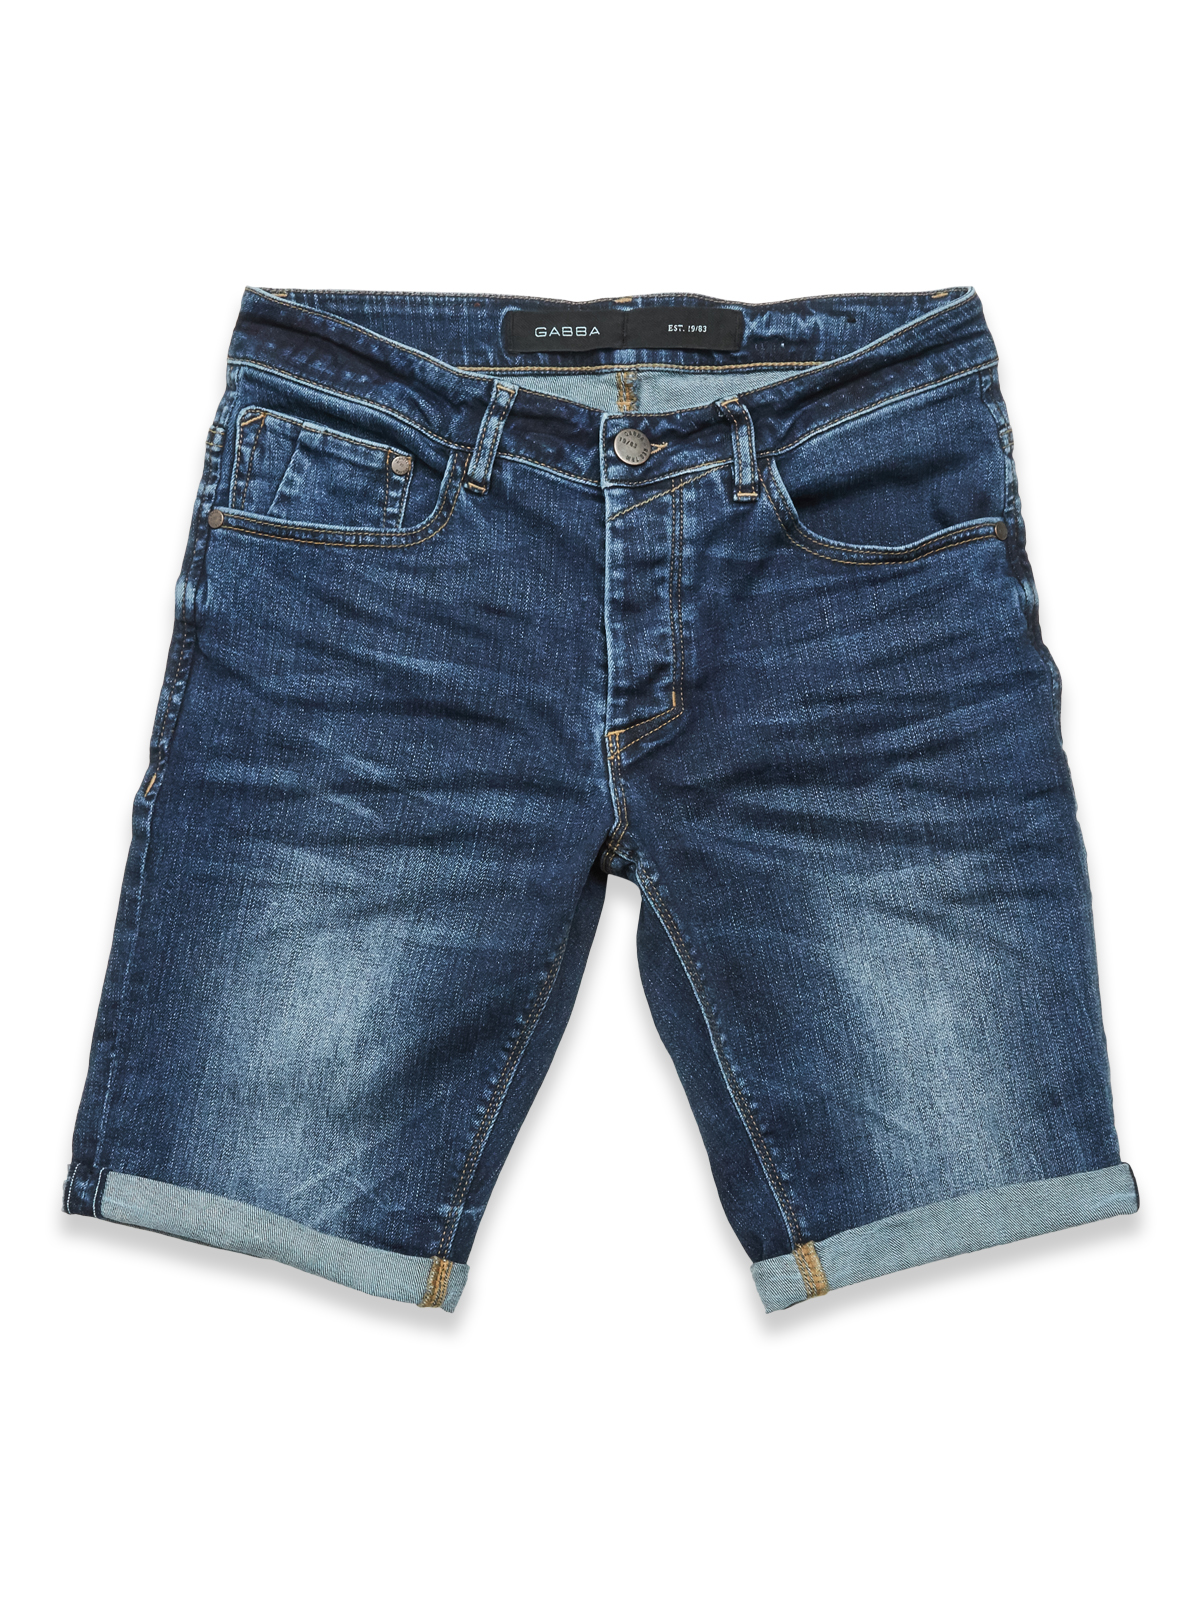 GABBA - Jason Shorts K2614 | Gate 36 Hobro